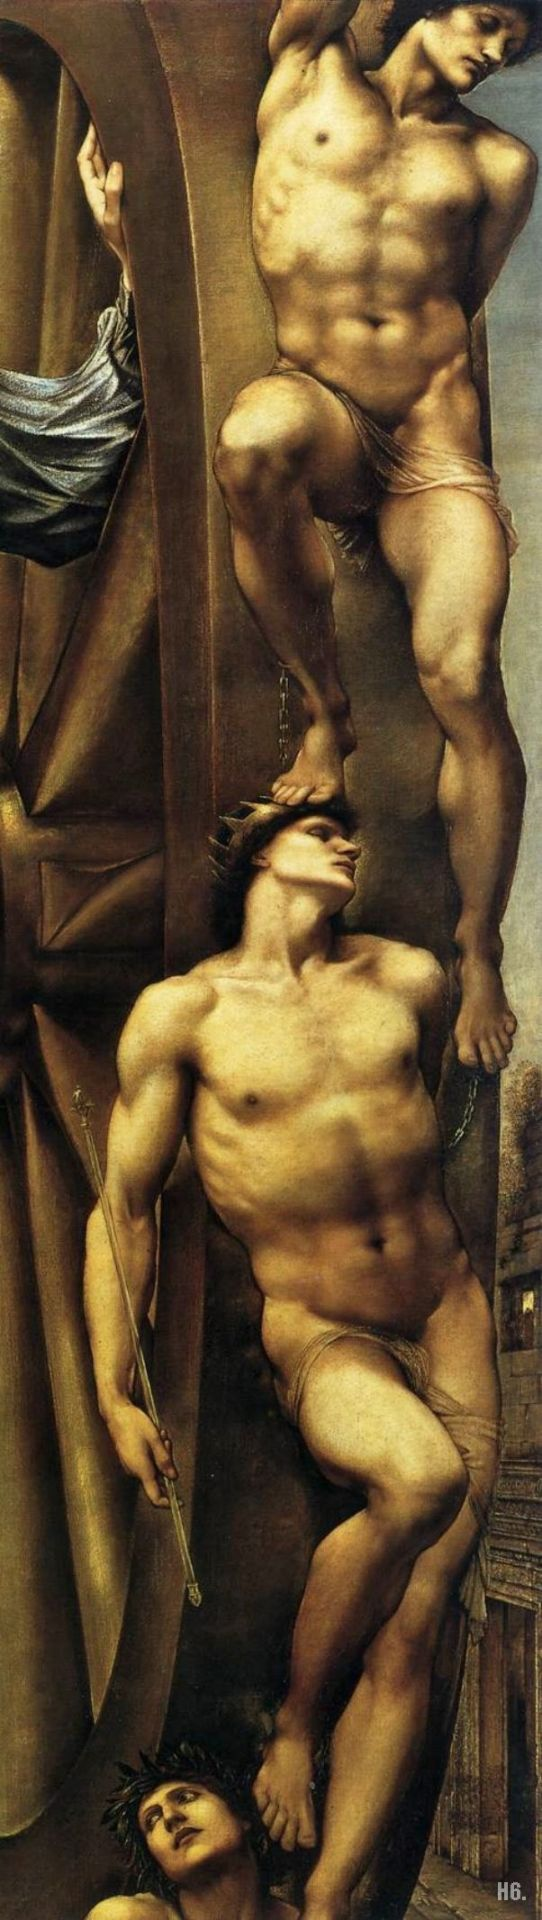 Detail : The wheel of fortune.1863. Edward Burne Jones. British. 1833-1898. oil _n canvas.        http:hadrian6.tumblr.com